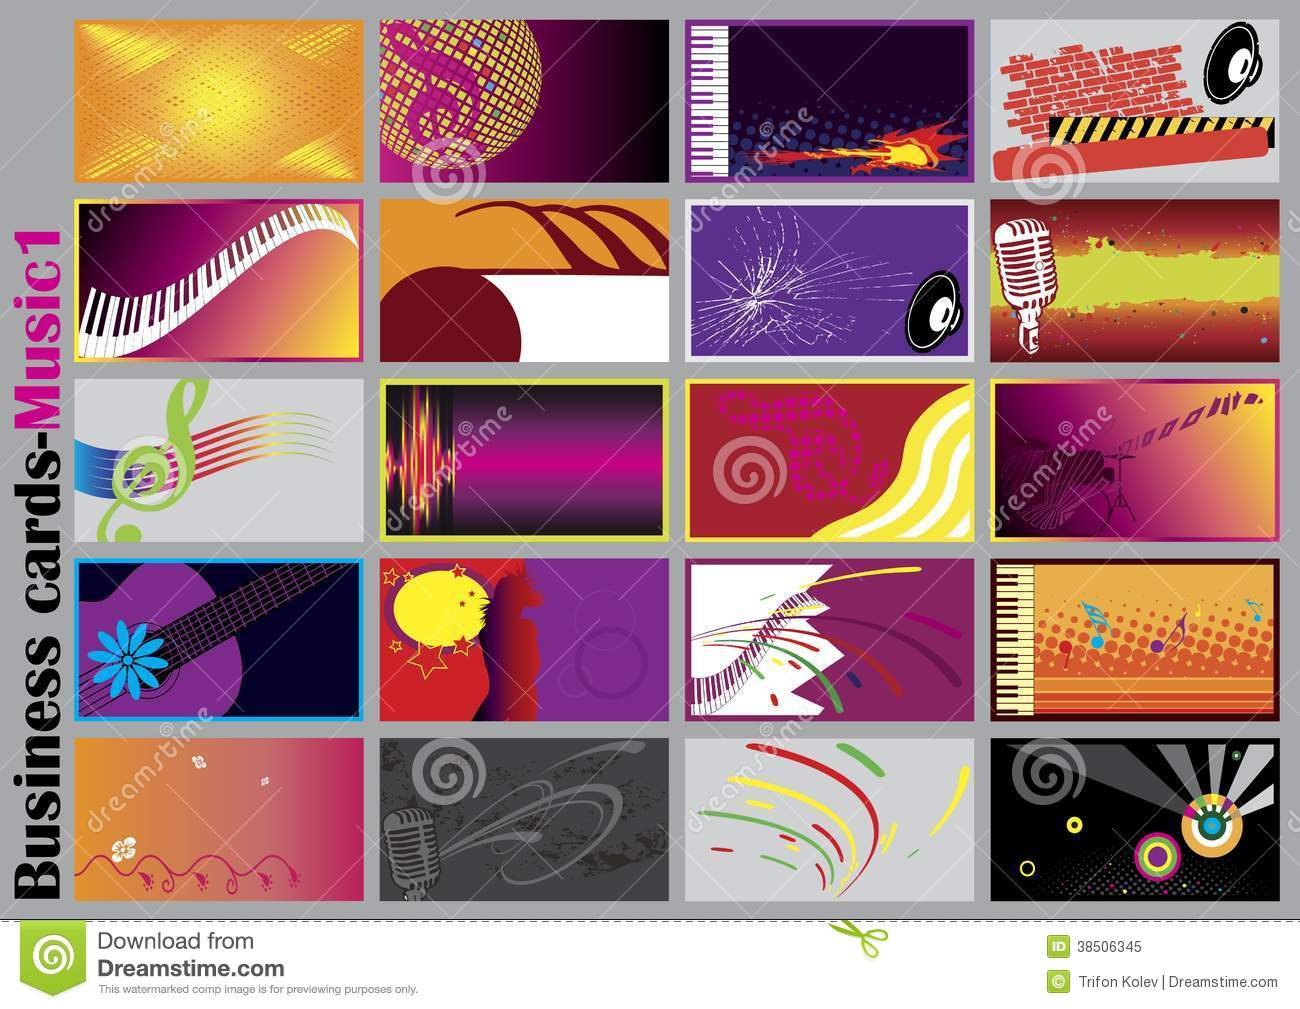 Music business cards stock vector illustration of banner 38506345 music business cards cheaphphosting Images